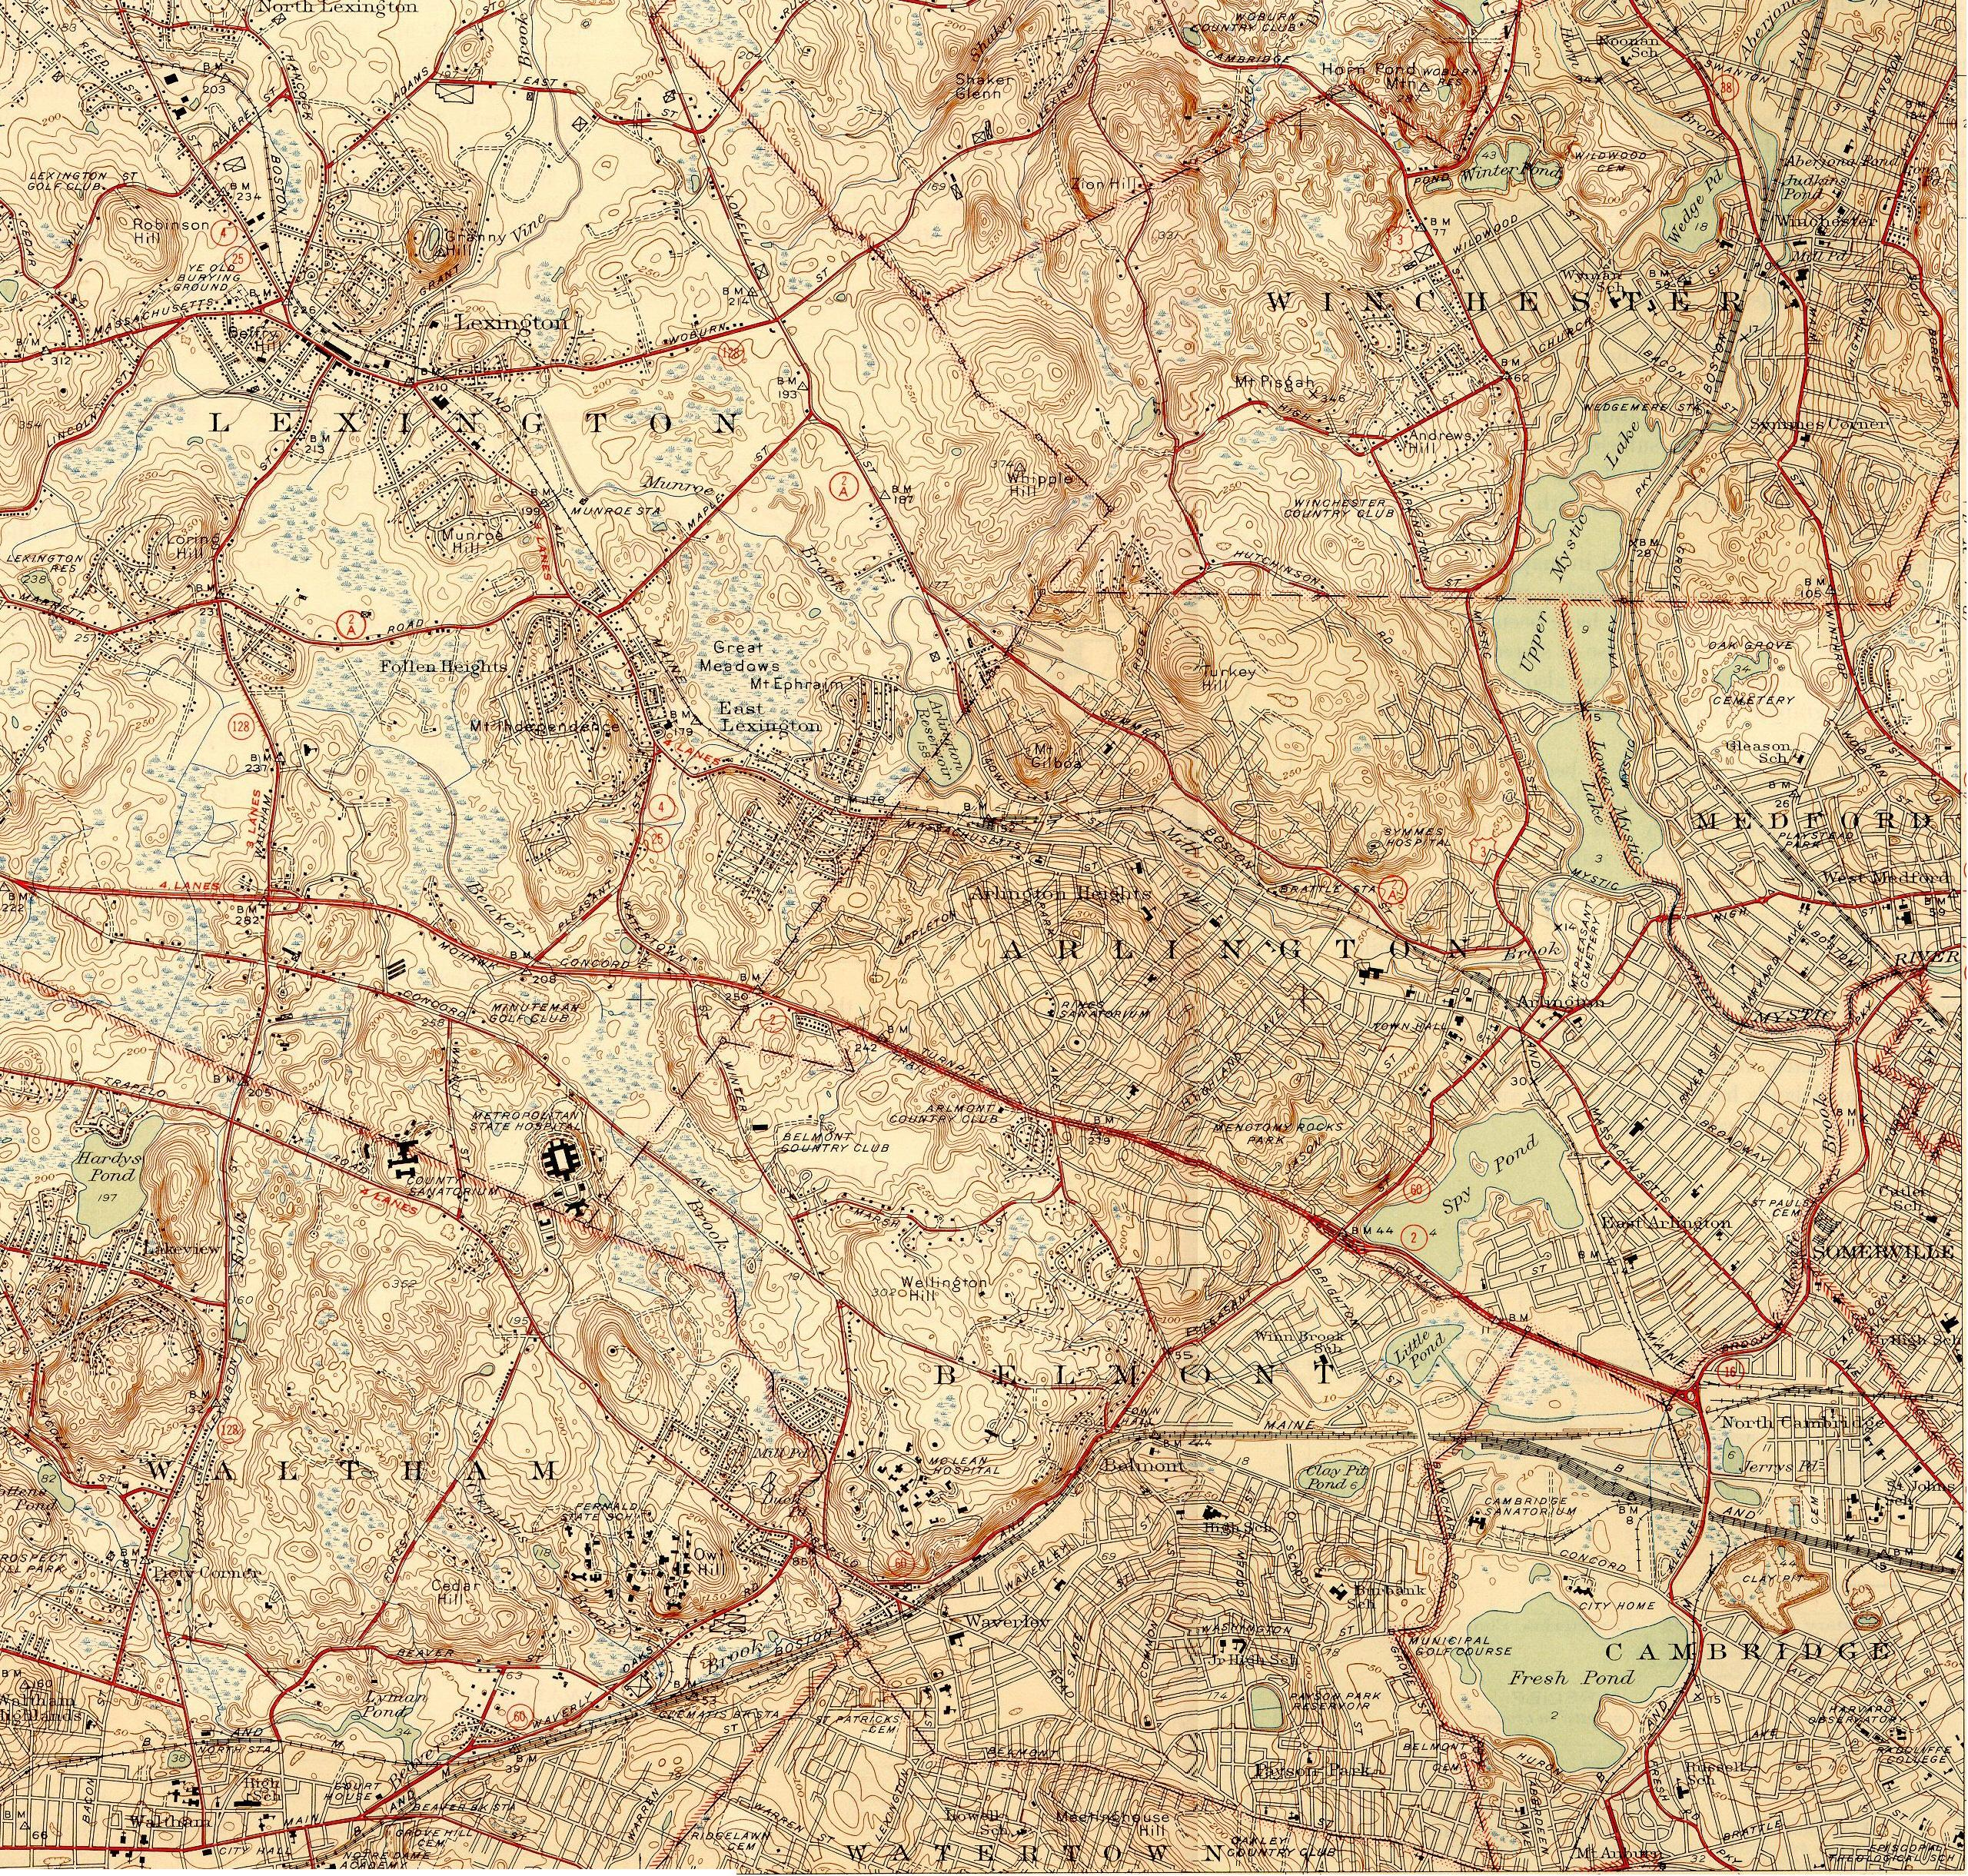 Historic Topographic Maps on